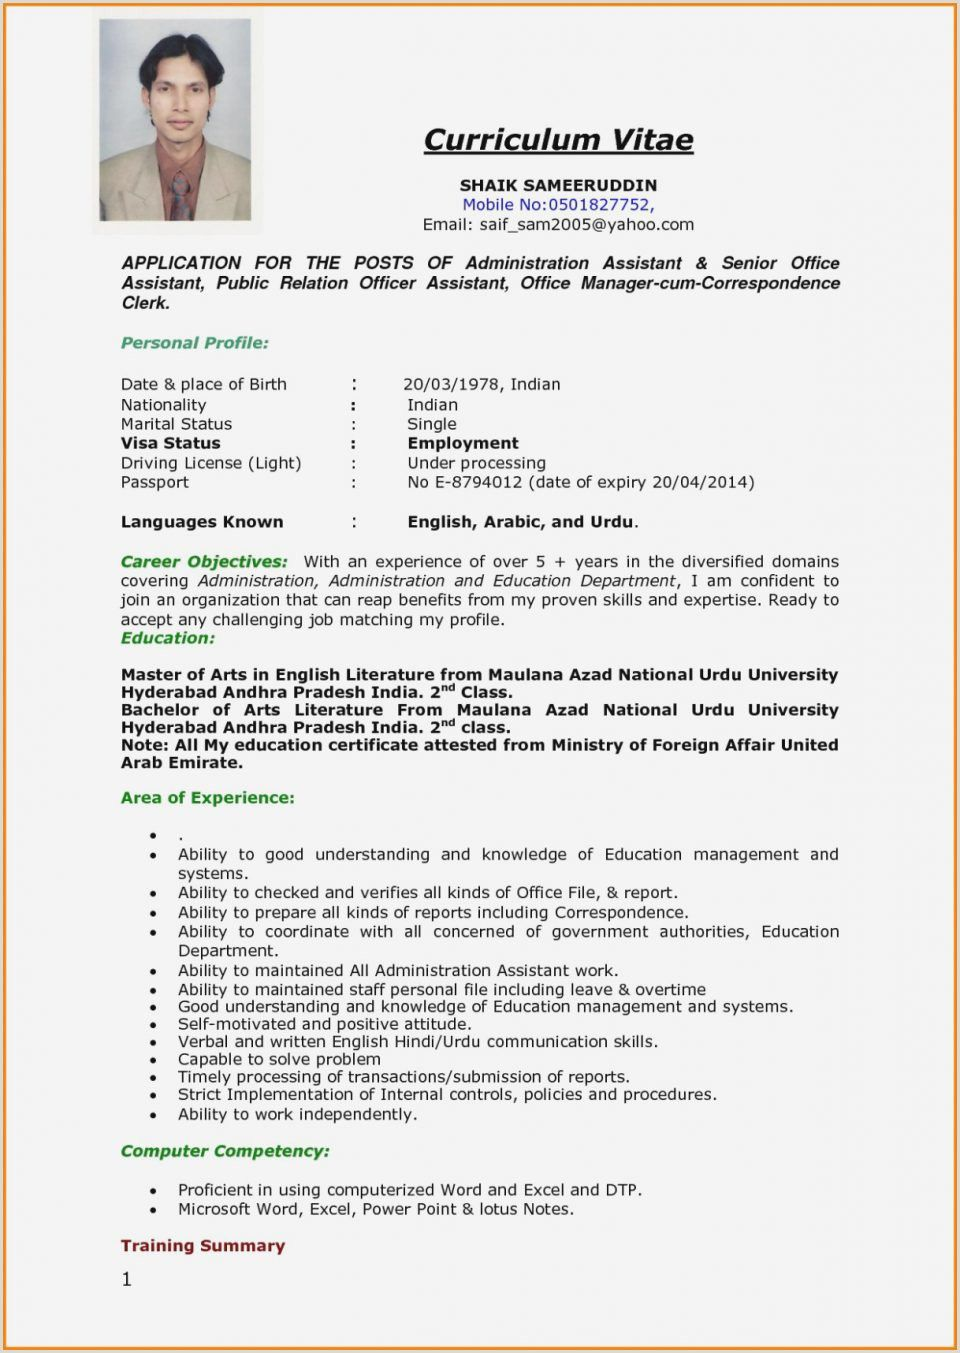 job interview format of resume for application big data administrator professional Resume Resume Format For Job Interview